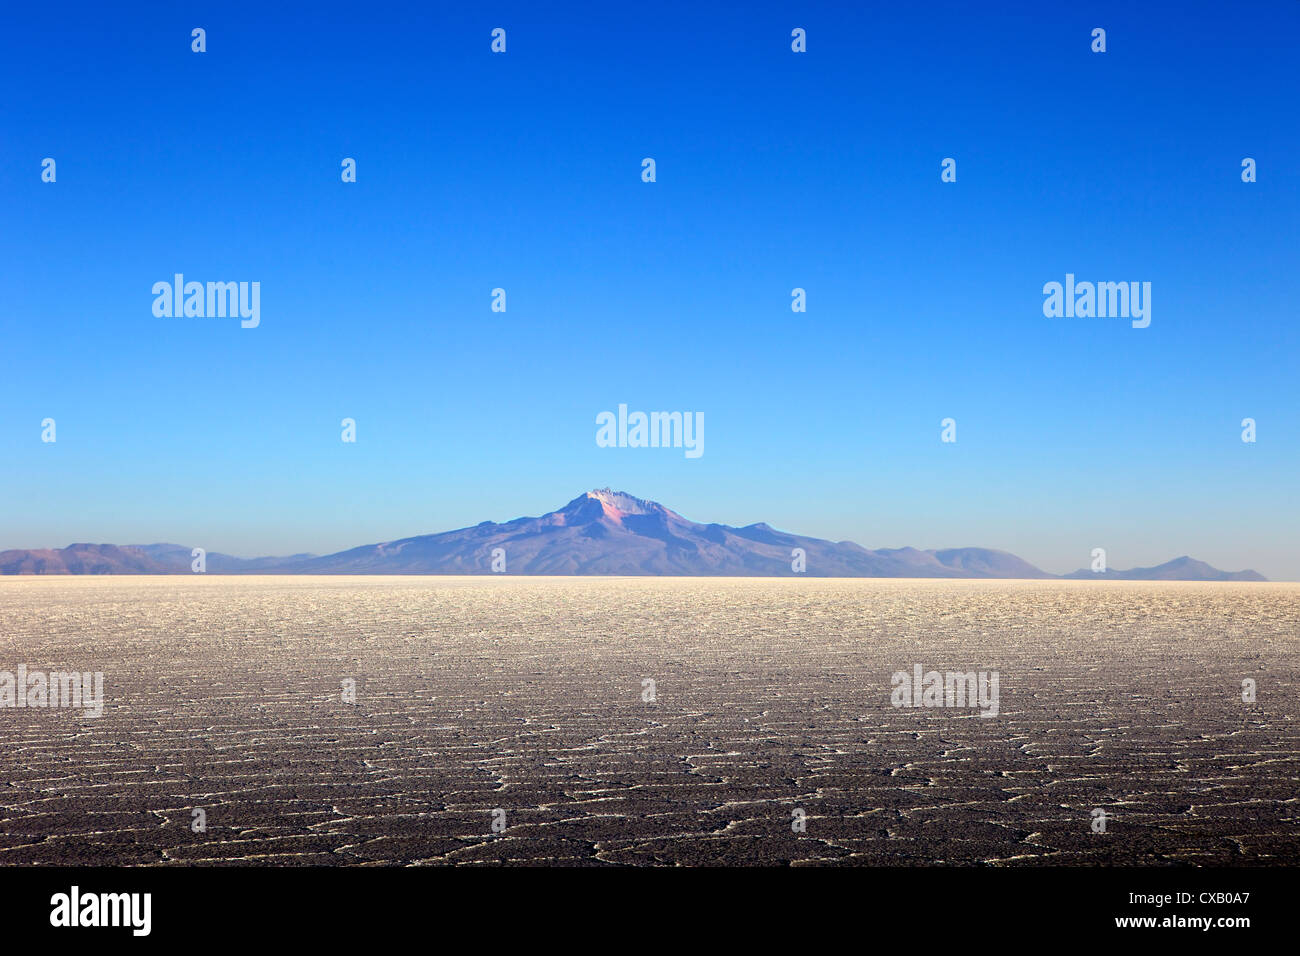 Salar de Uyuni salt flat and Mount Tunupa, Andes mountains in the distance in south-western Bolivia, South America - Stock Image